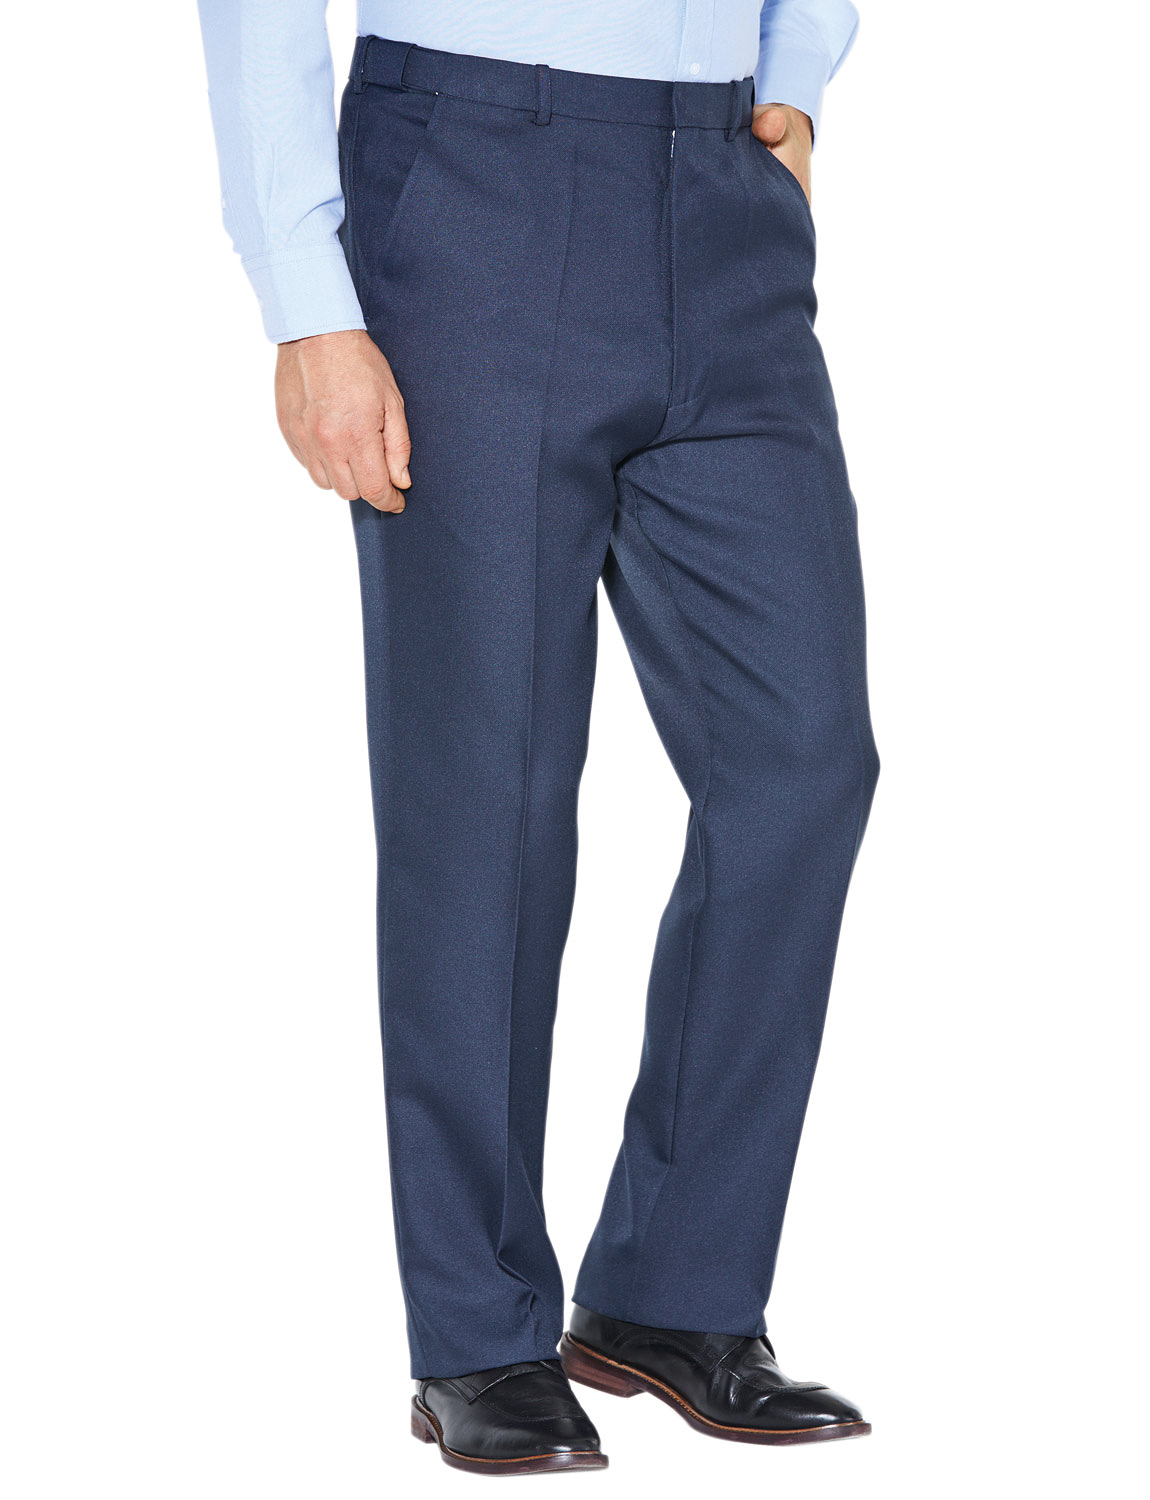 Mens-Stretch-Waist-Formal-Smart-Work-Trouser-Pants thumbnail 16